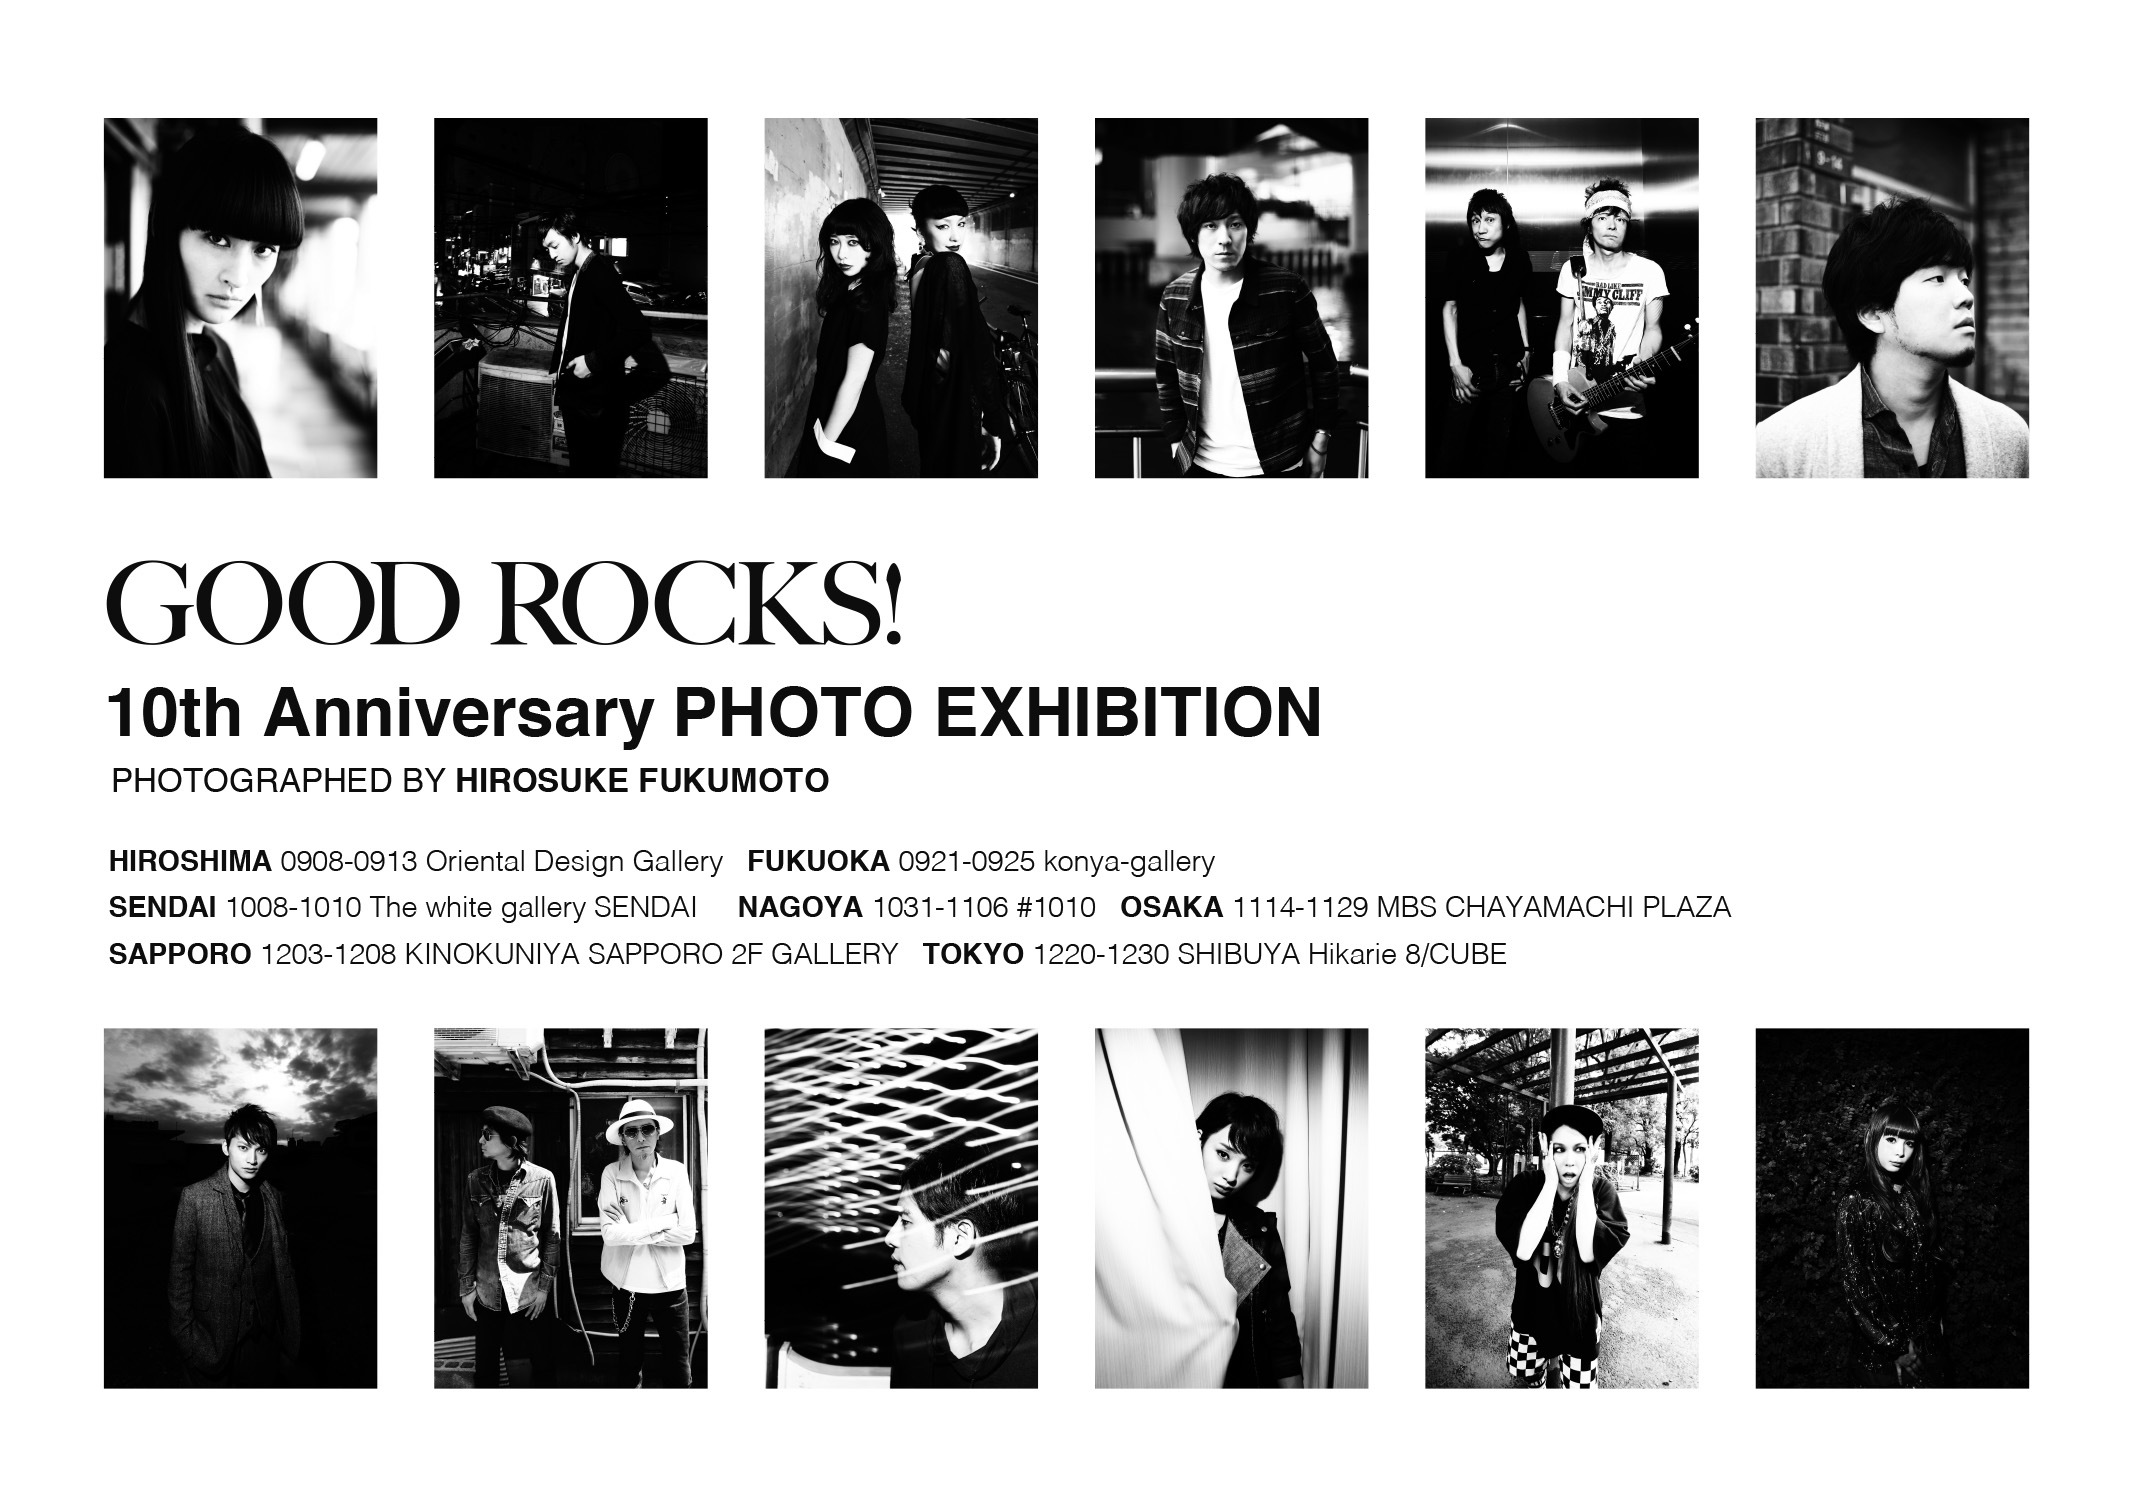 『GOOD ROCKS! 10th Anniversary PHOTO EXHIBITION PHOTOGRAPHED BY HIROSUKE FUKUMOTO』